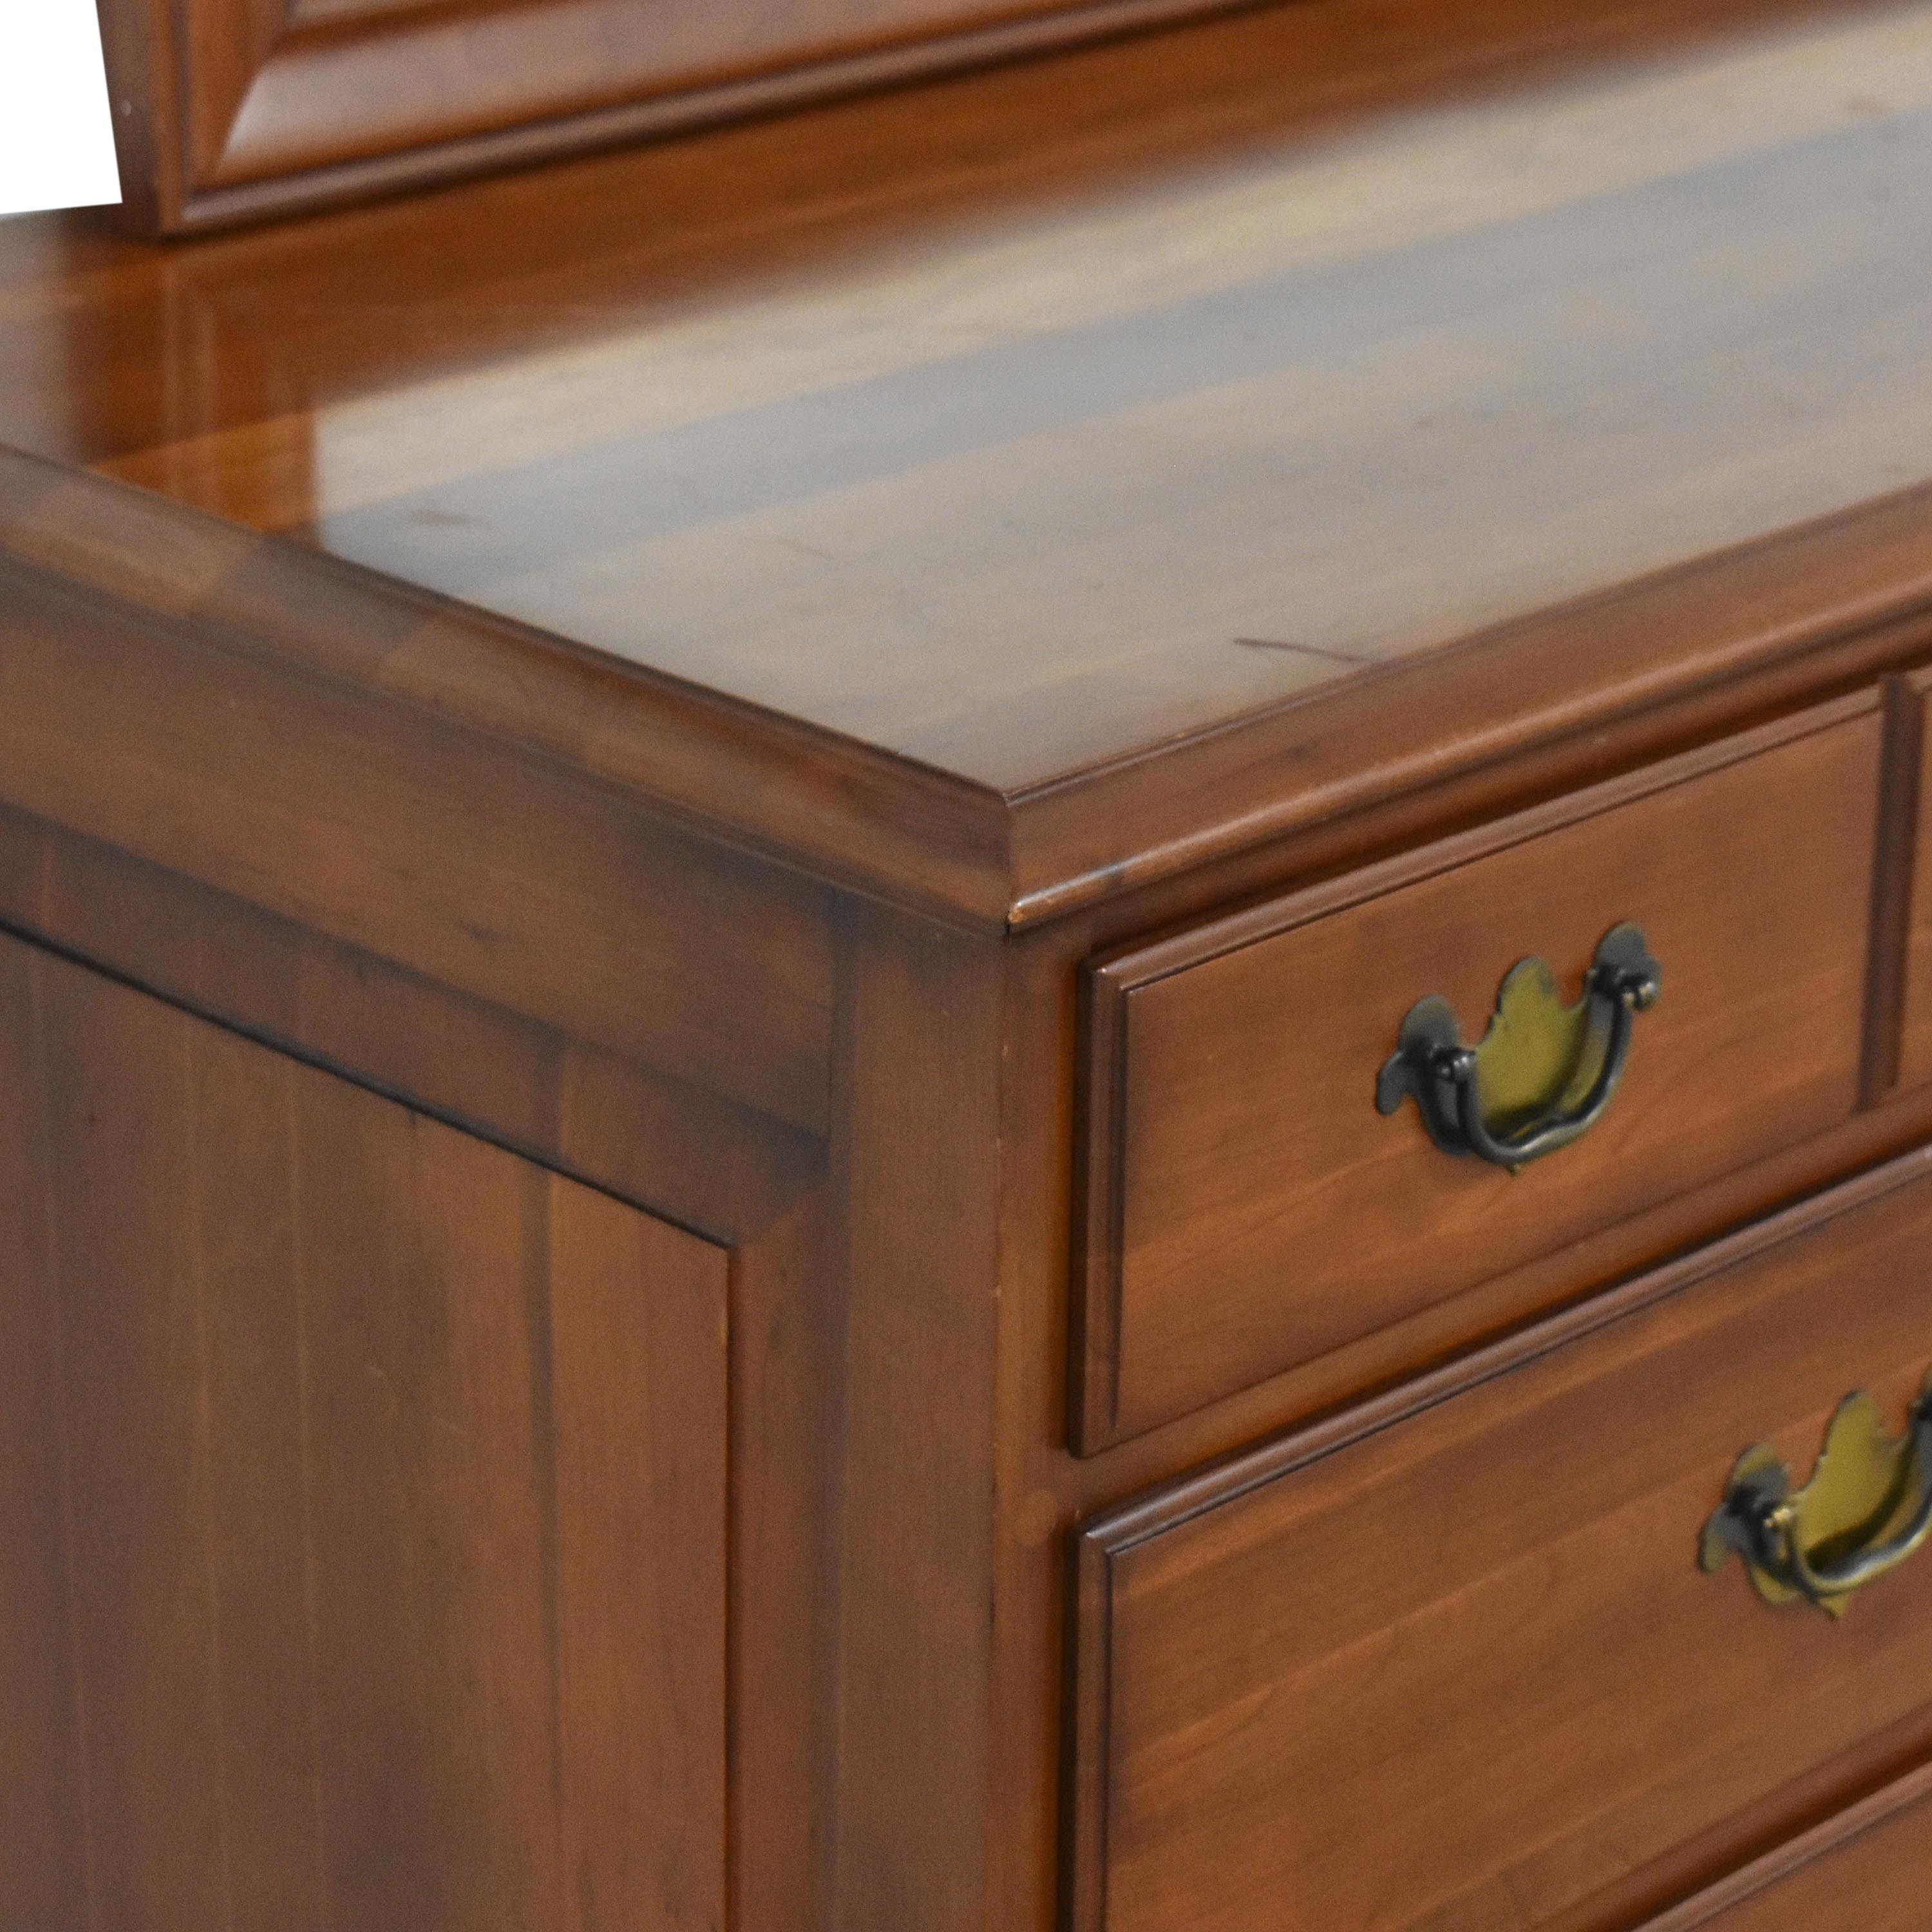 Permacraft Permacraft Twelve Drawer Concord Dresser with Mirror coupon